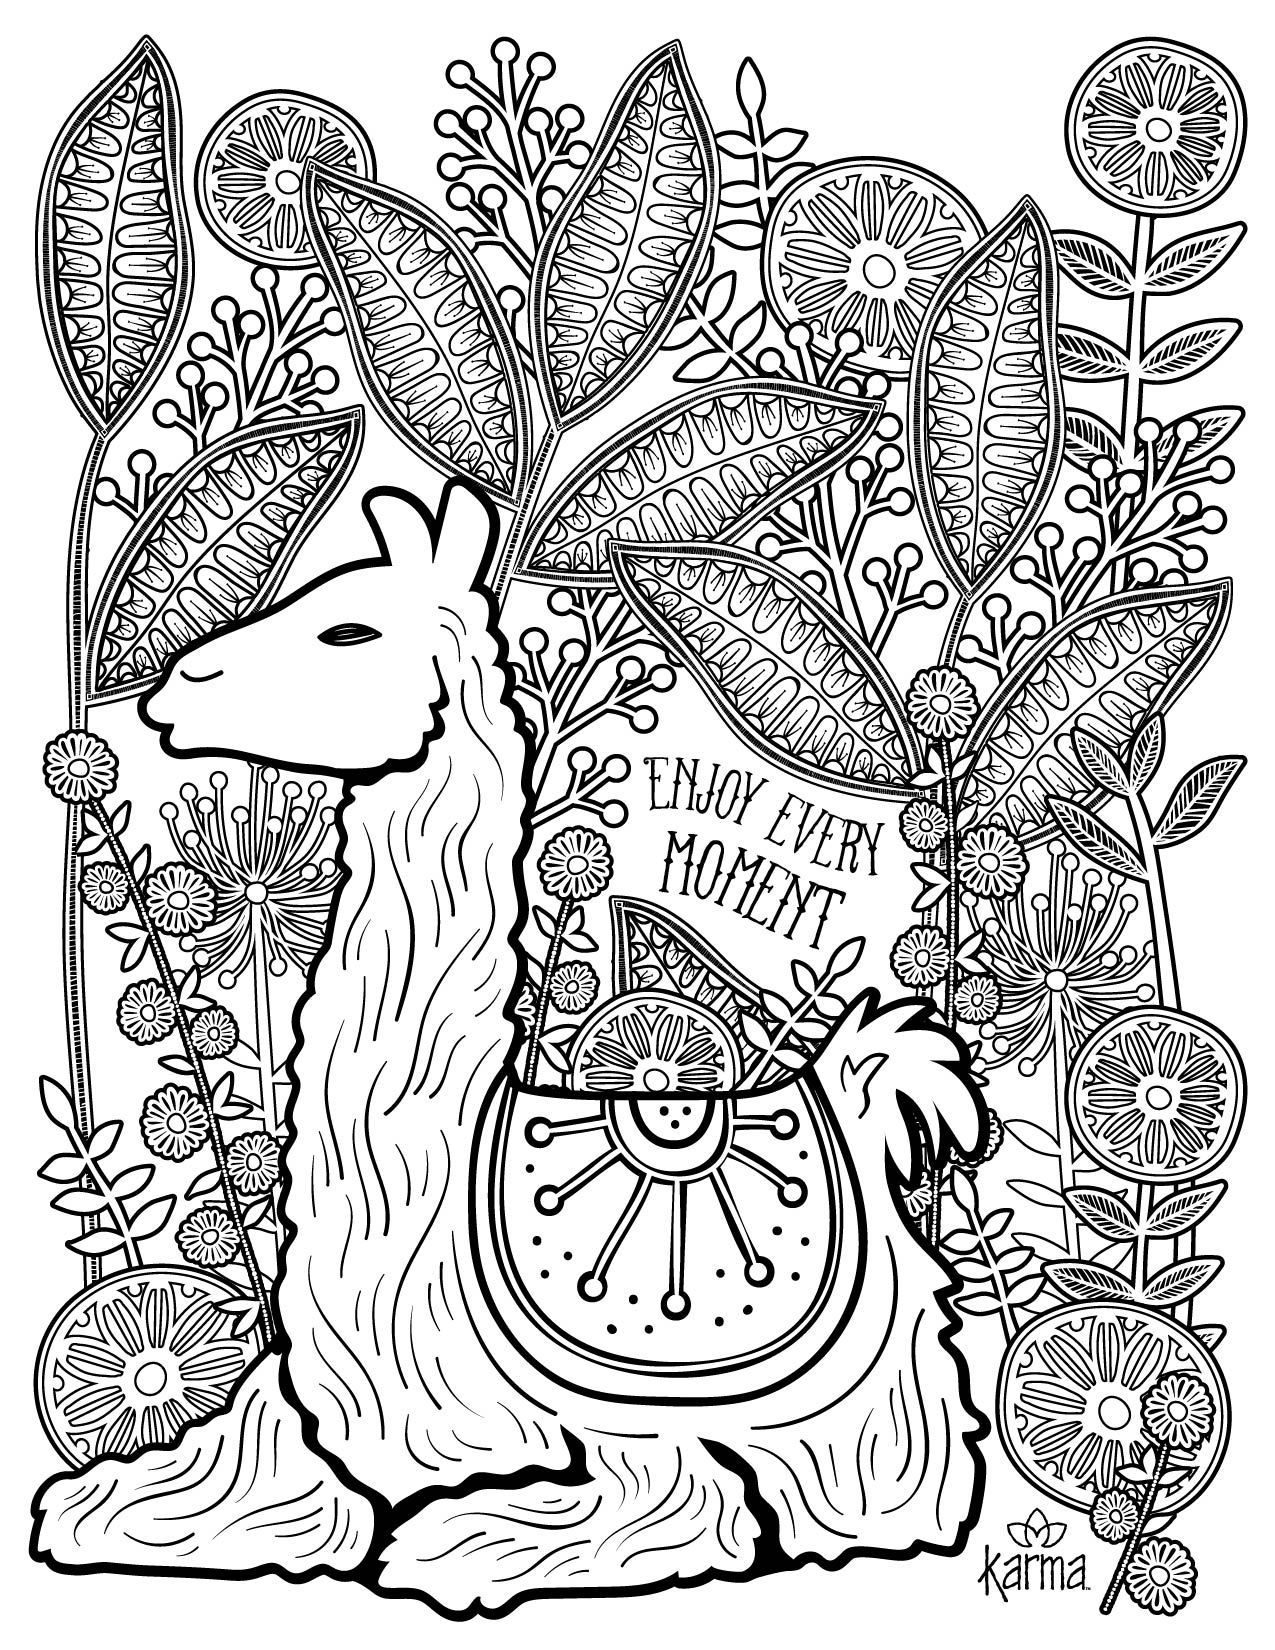 Llama Free And Printable Coloring Page By Karma Ts